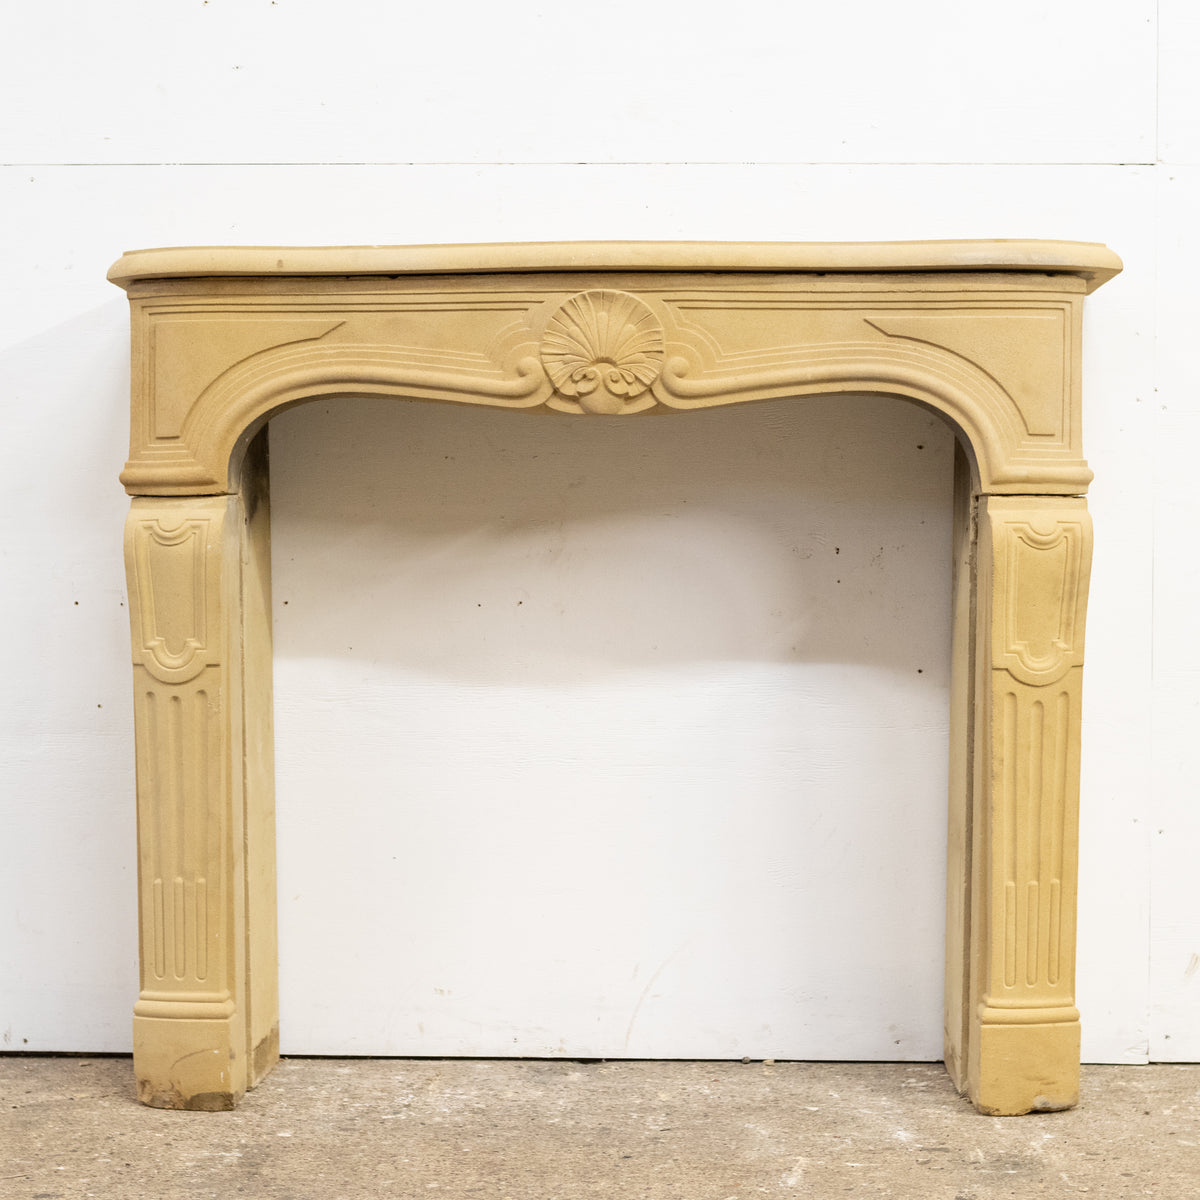 Reclaimed Stone French Style Louis Chimneypiece with Hearth | The Architectural Forum